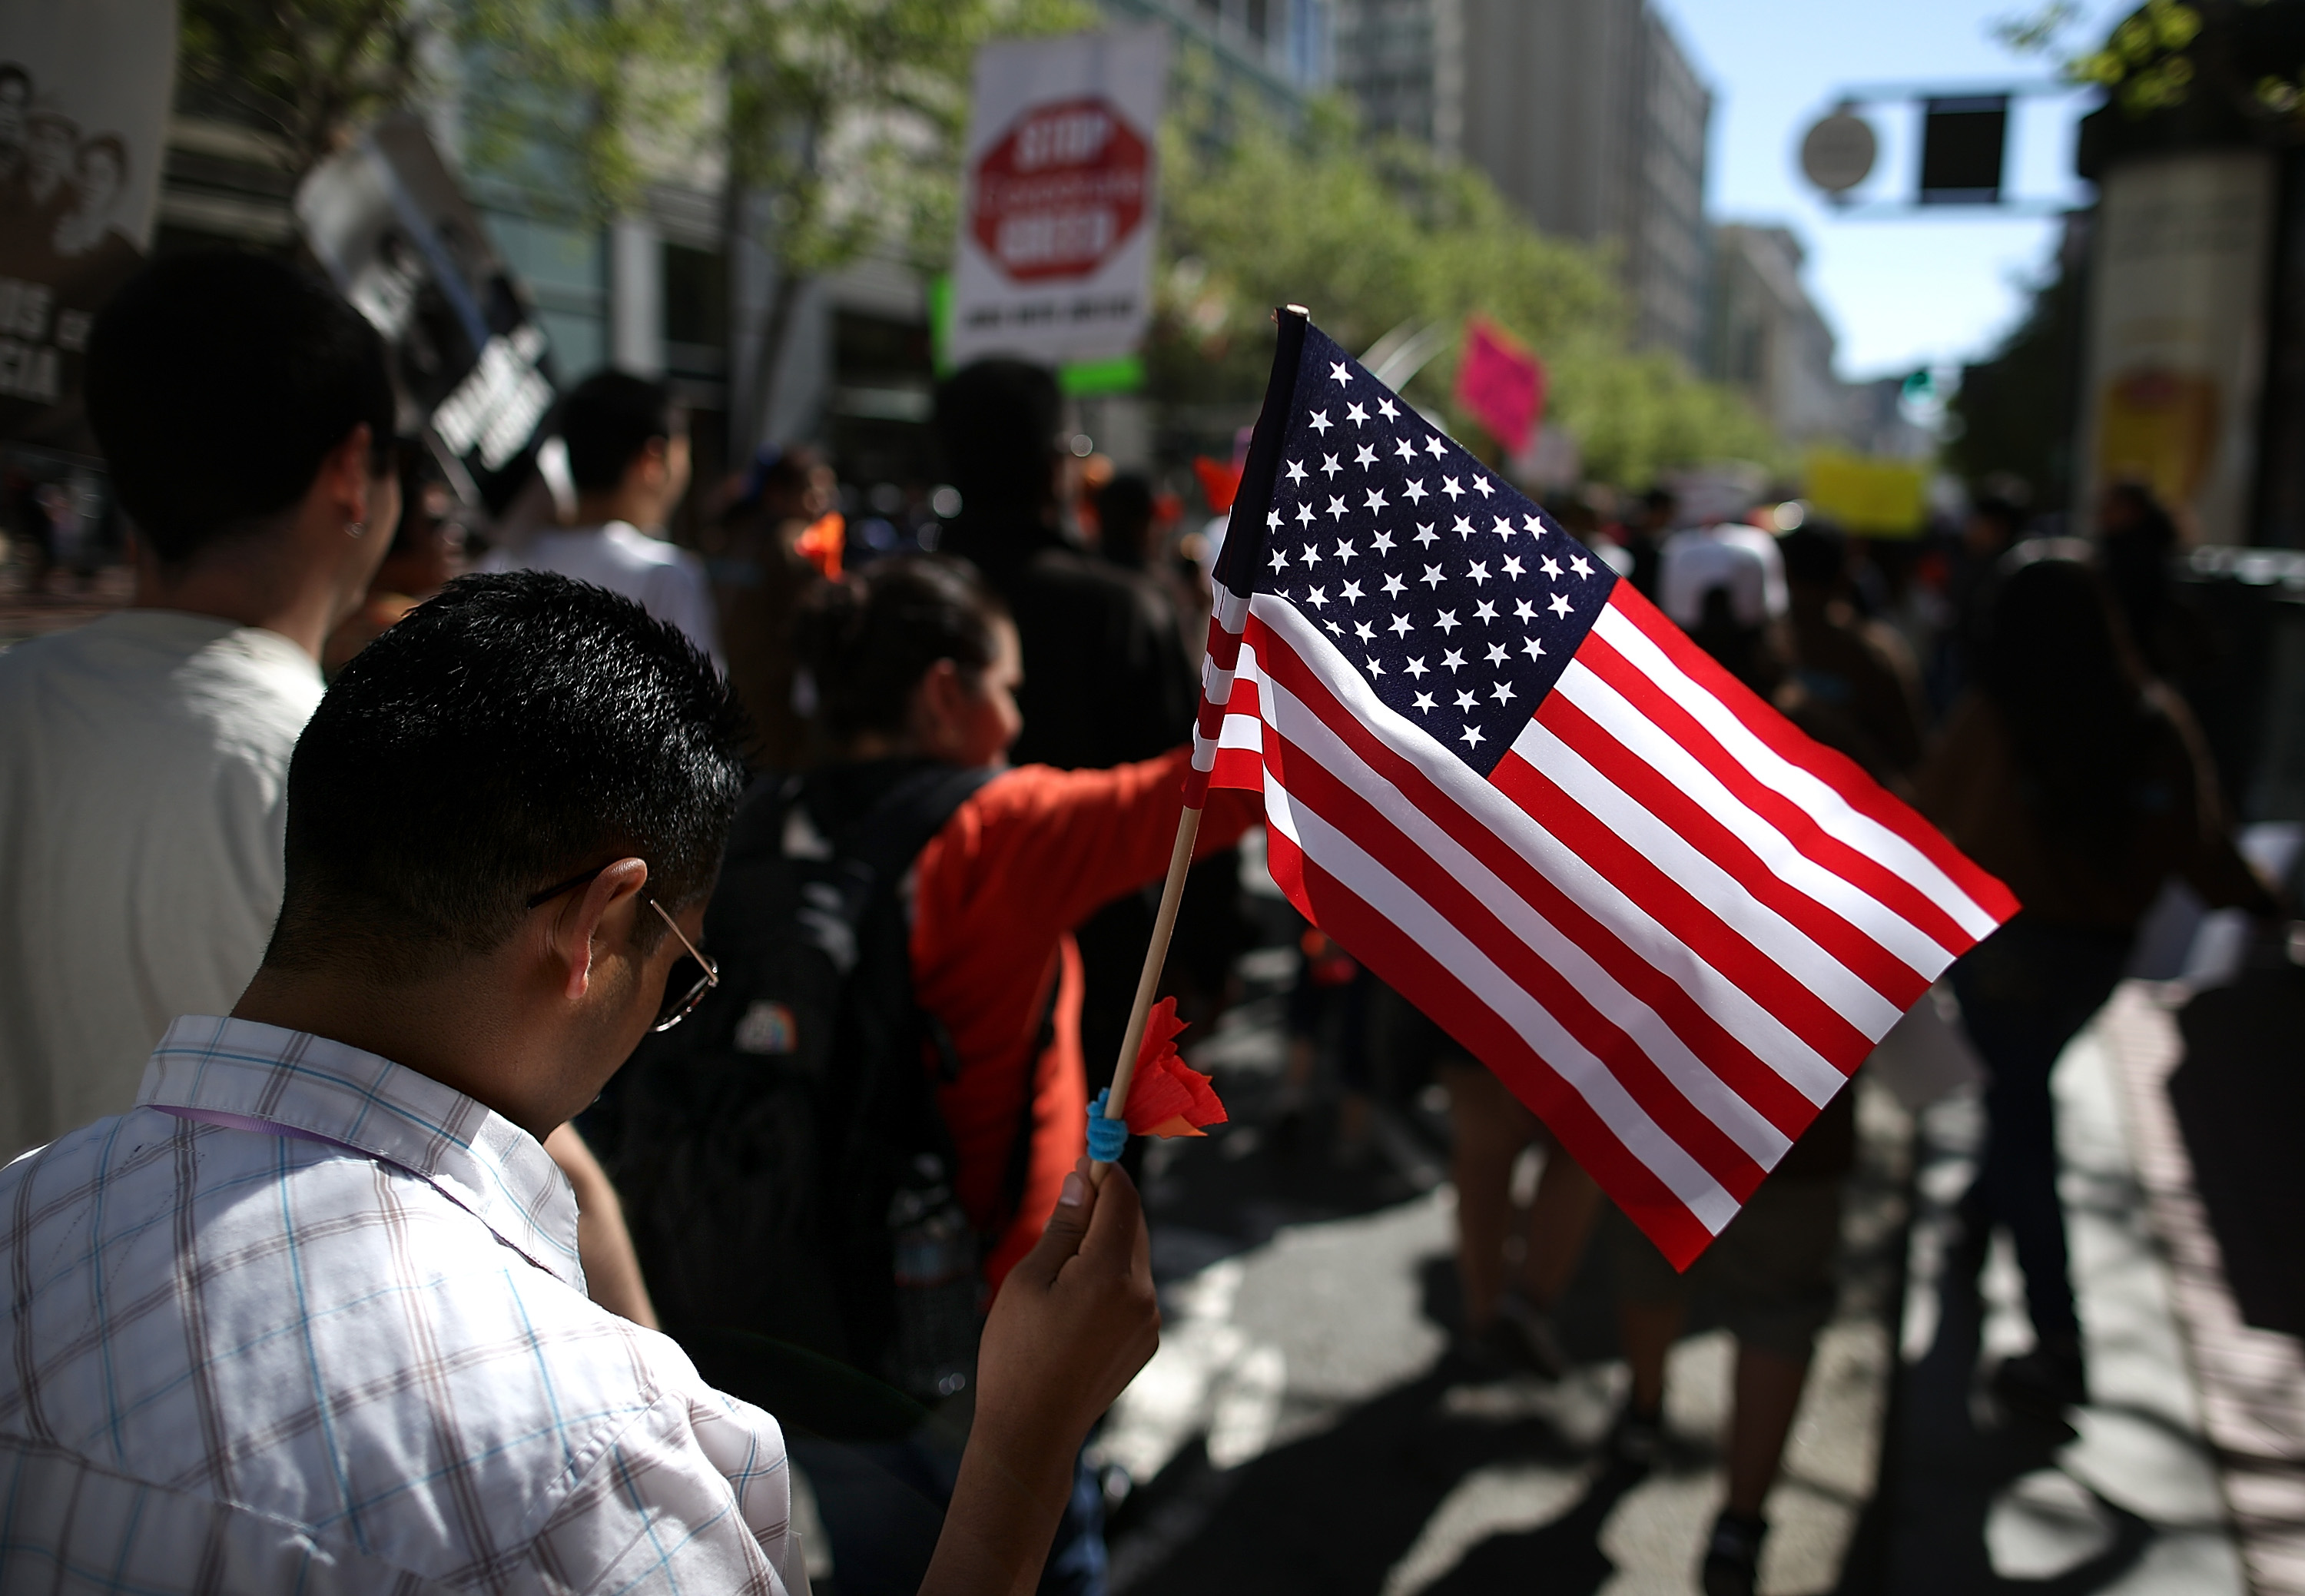 Undocumented Immigrants Still Mistreated by Employers